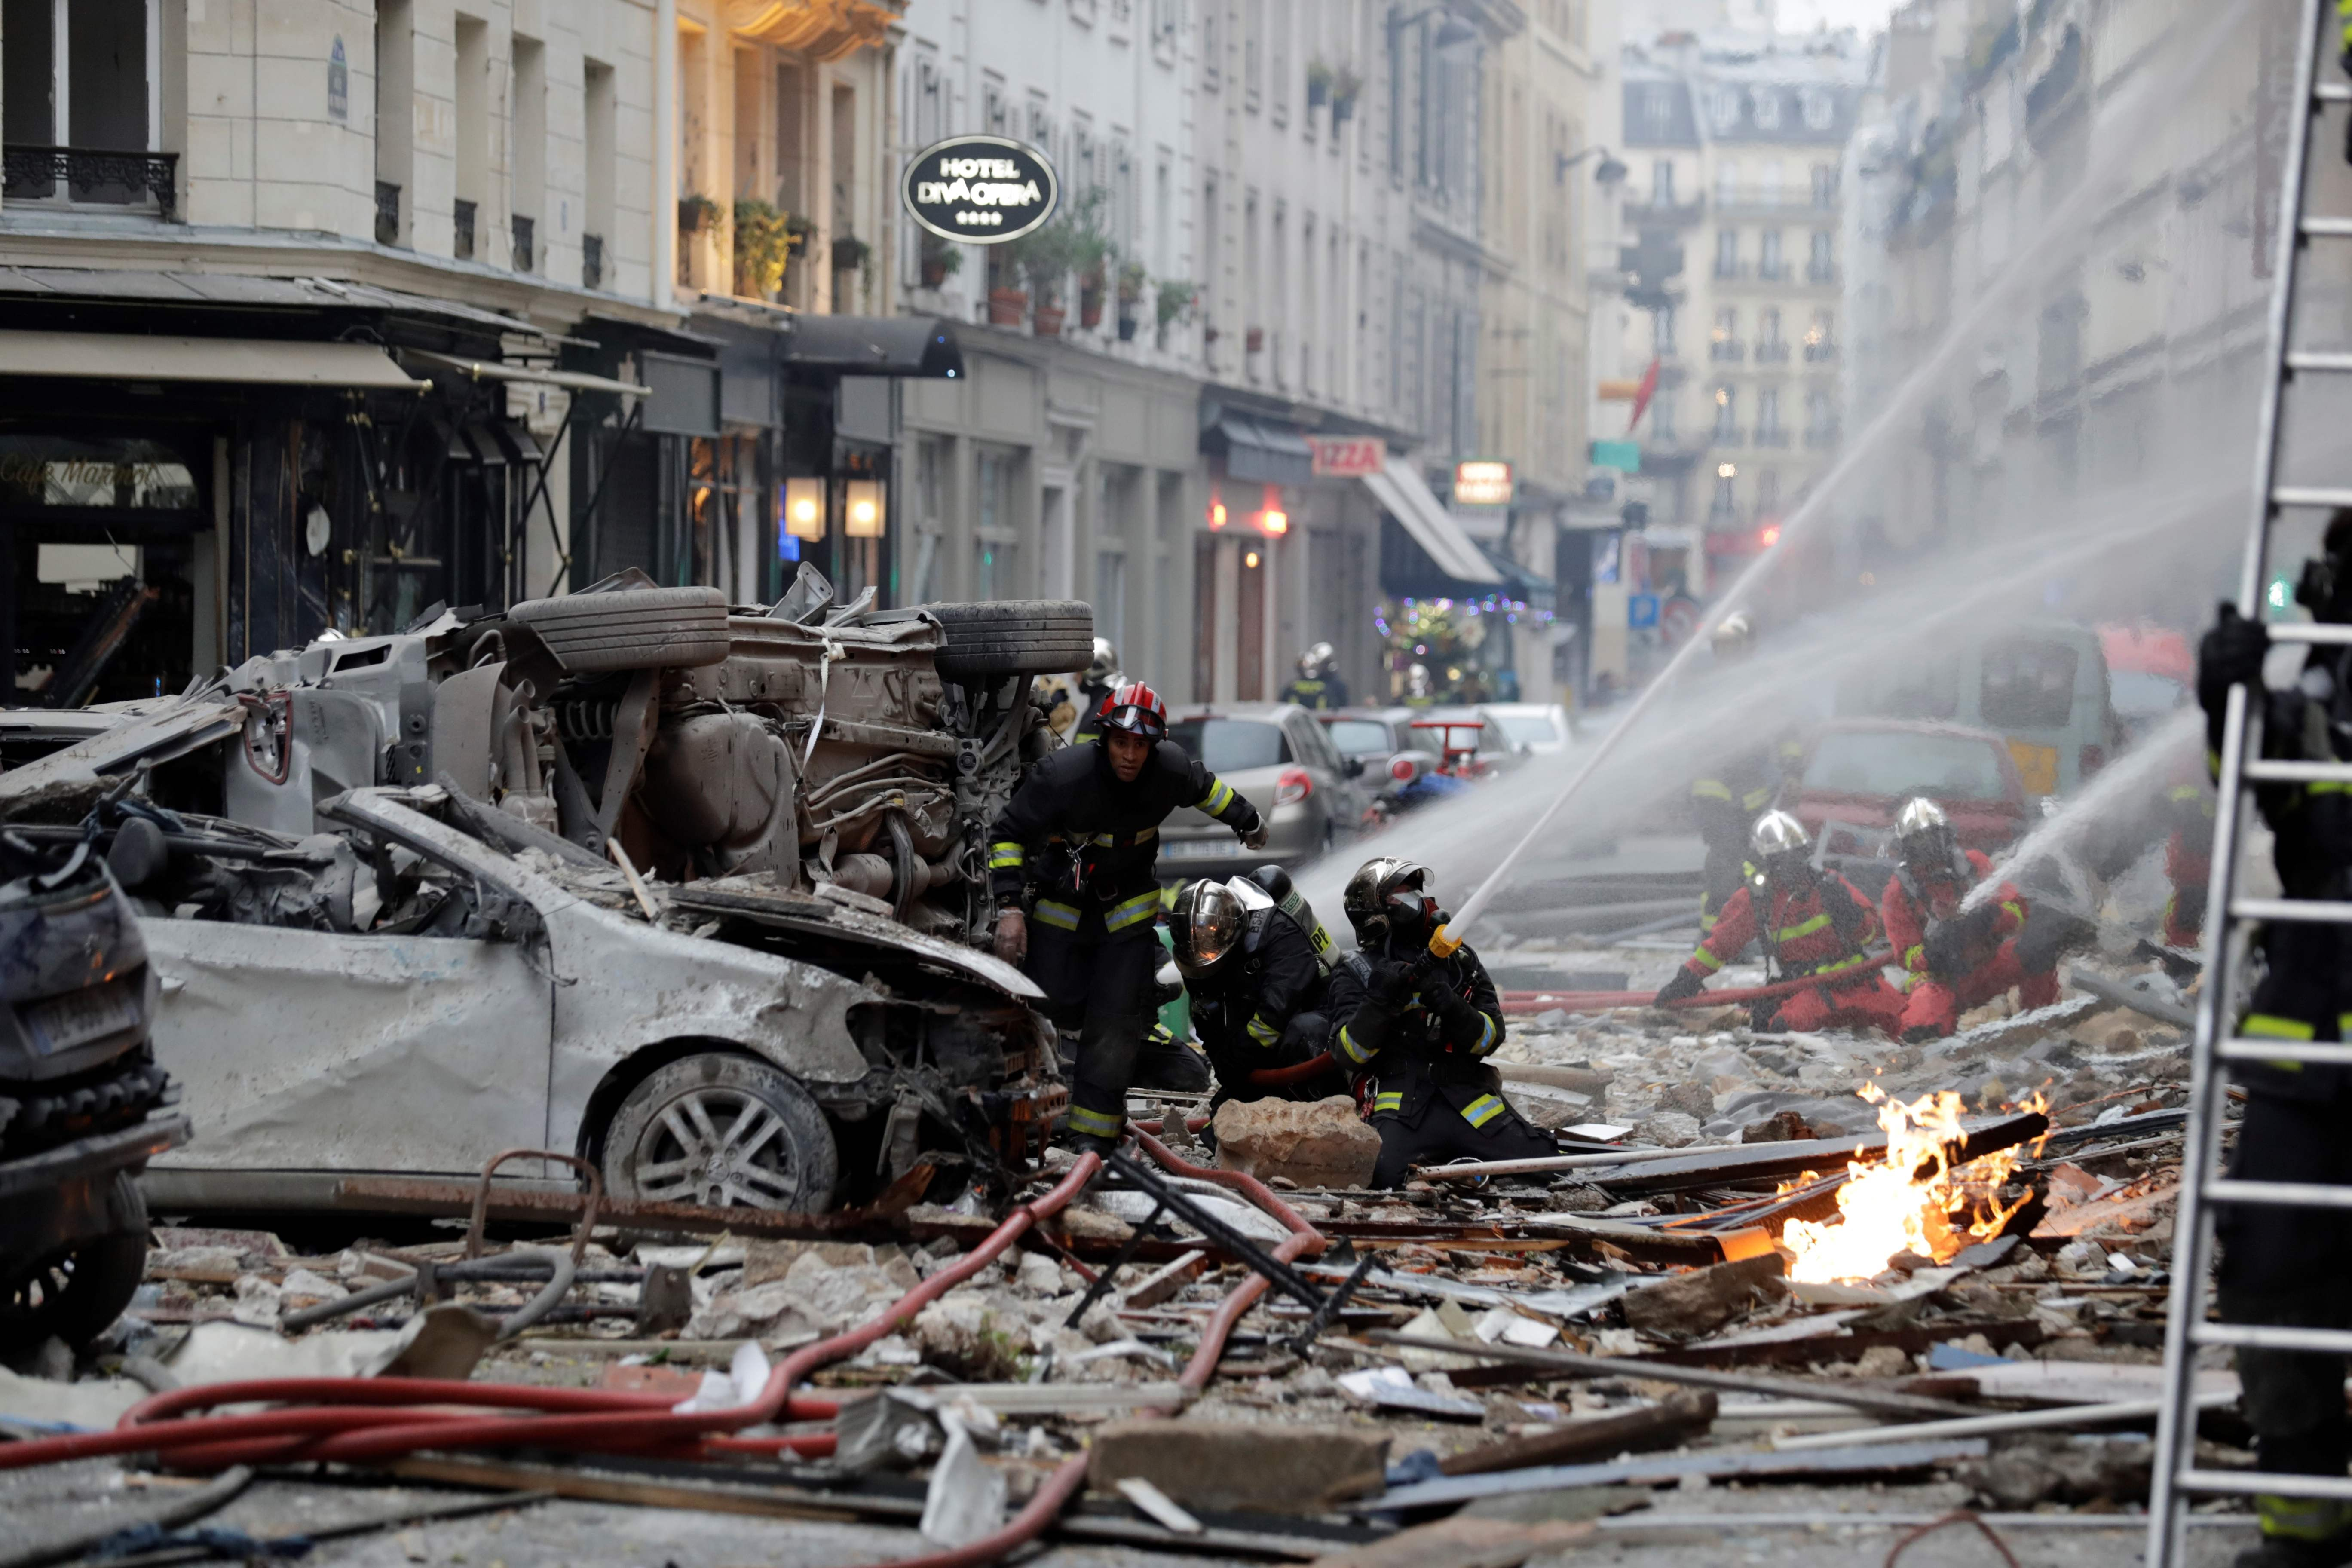 2 firefighters dead, 47 injured after Paris bakery blast, French authorities say